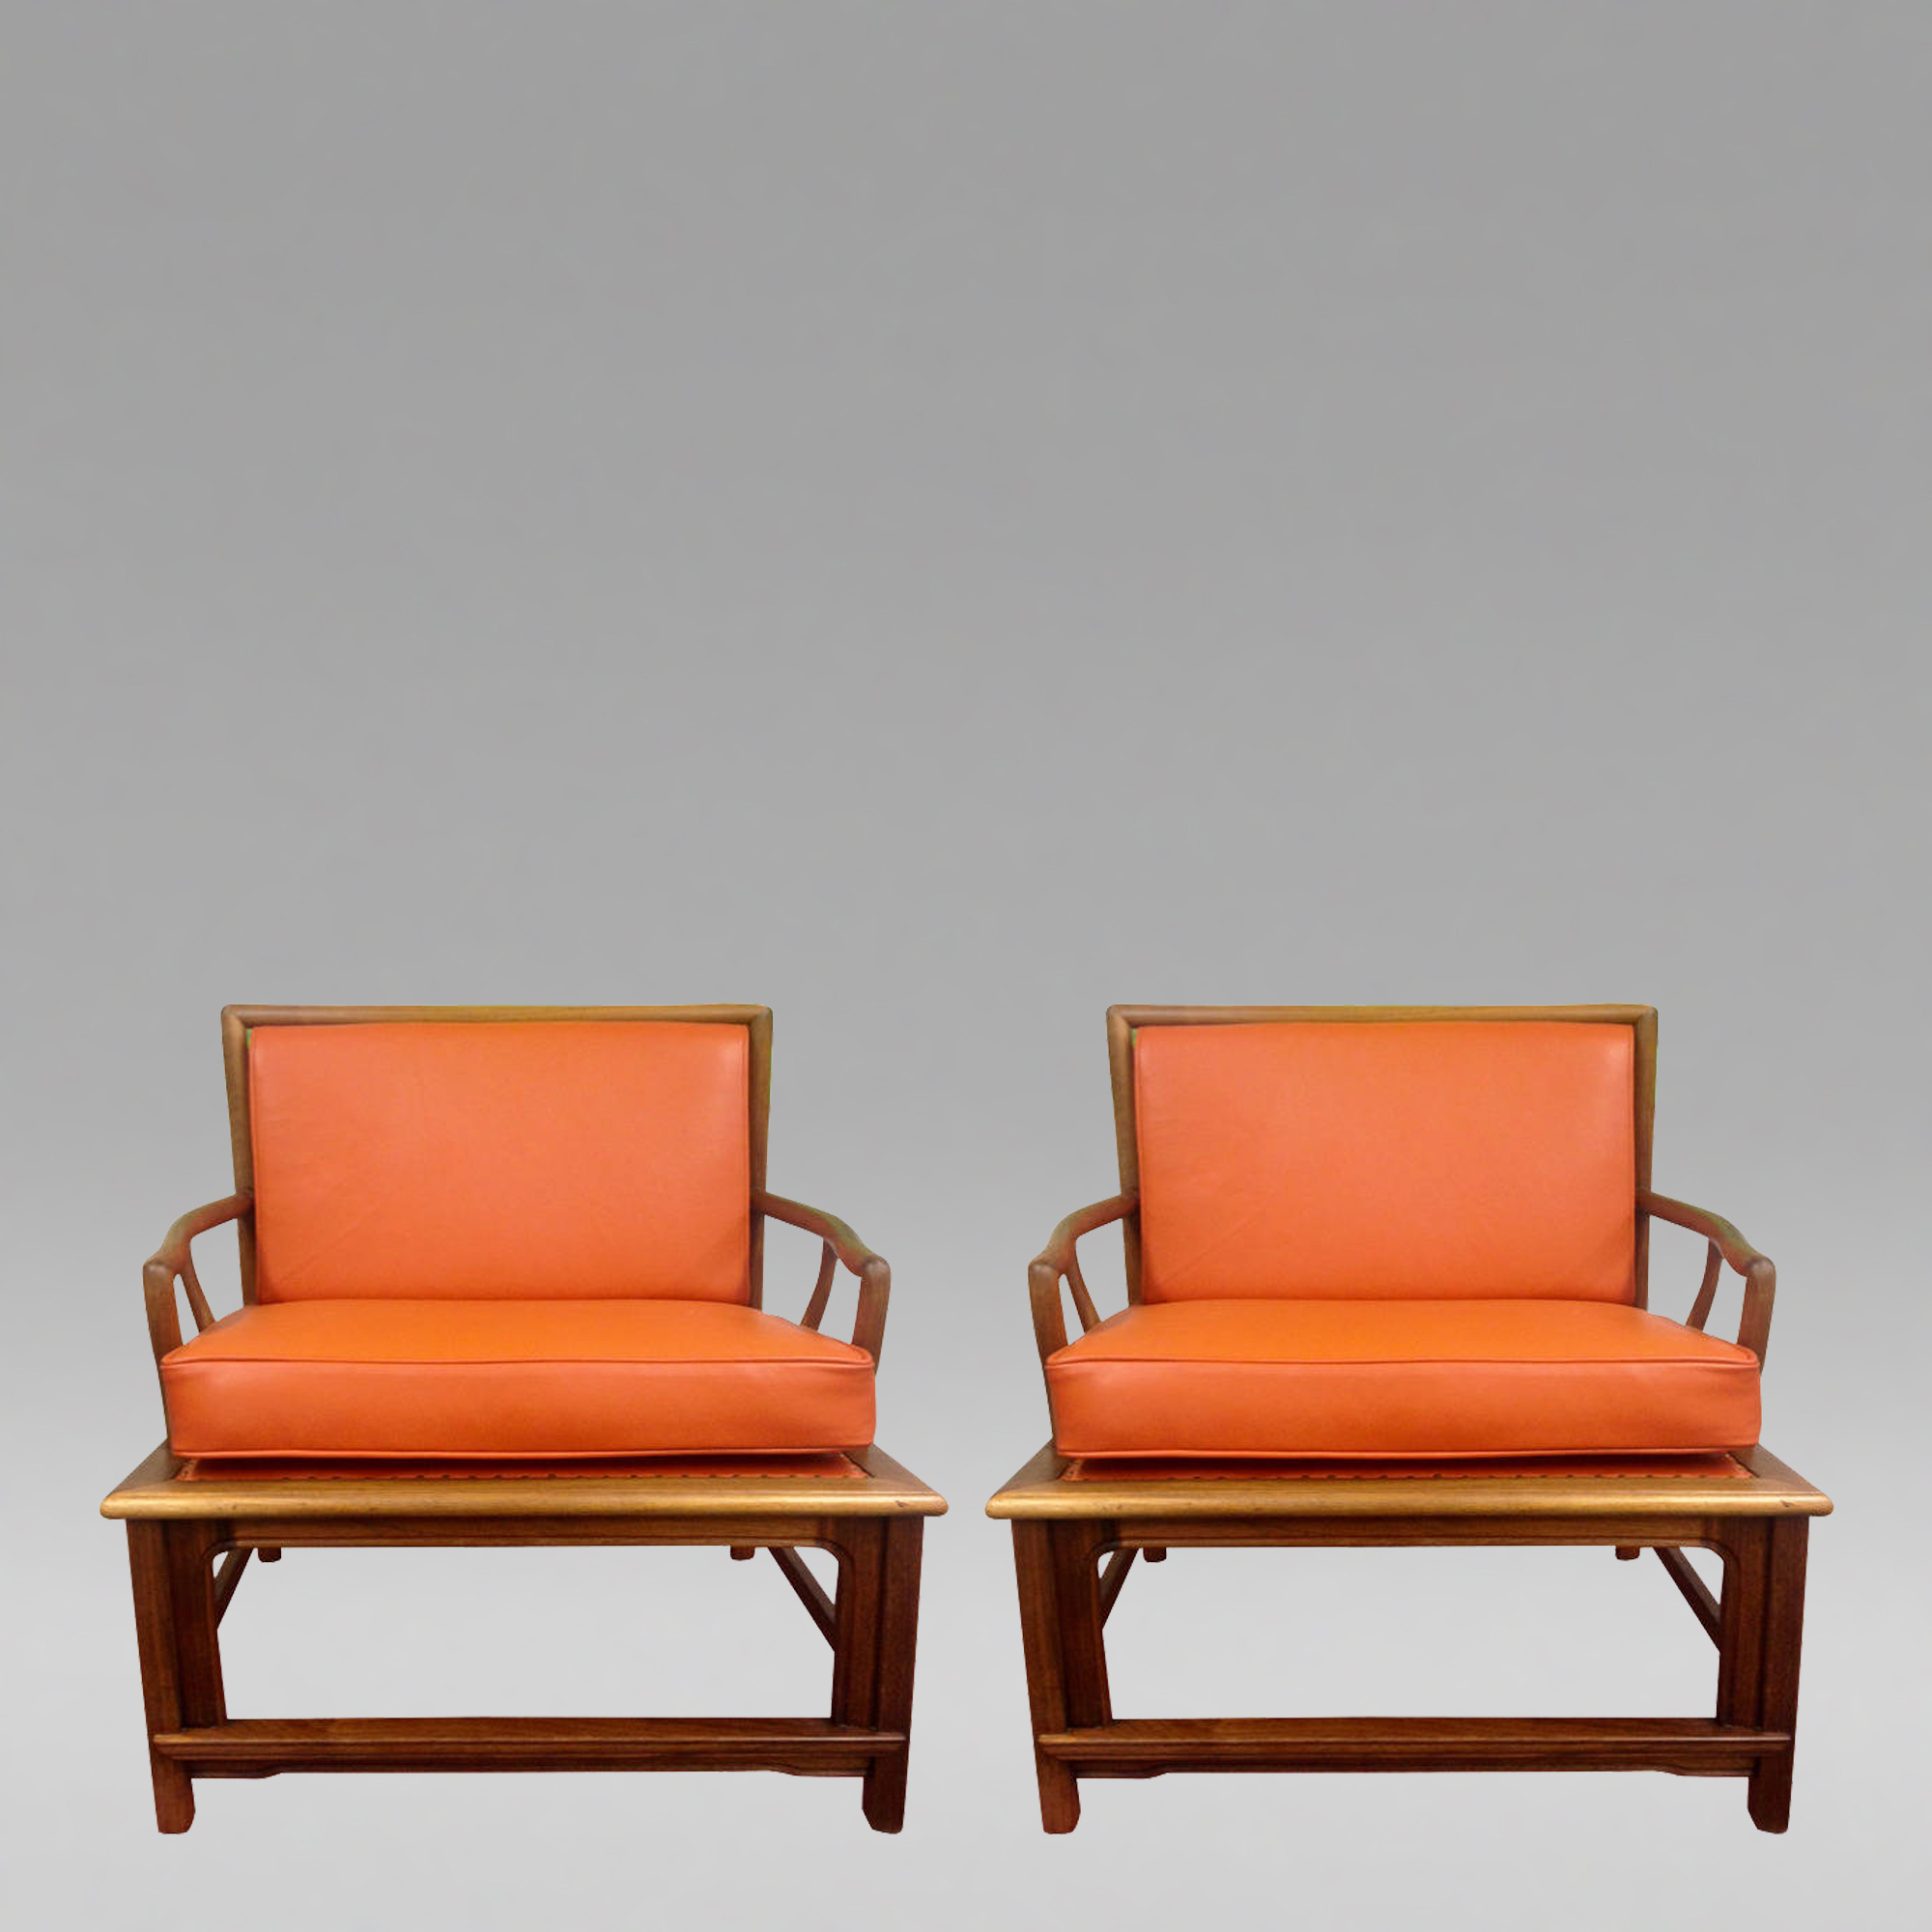 1960s Style Furniture mid century modern furniture and design shine at the los angeles